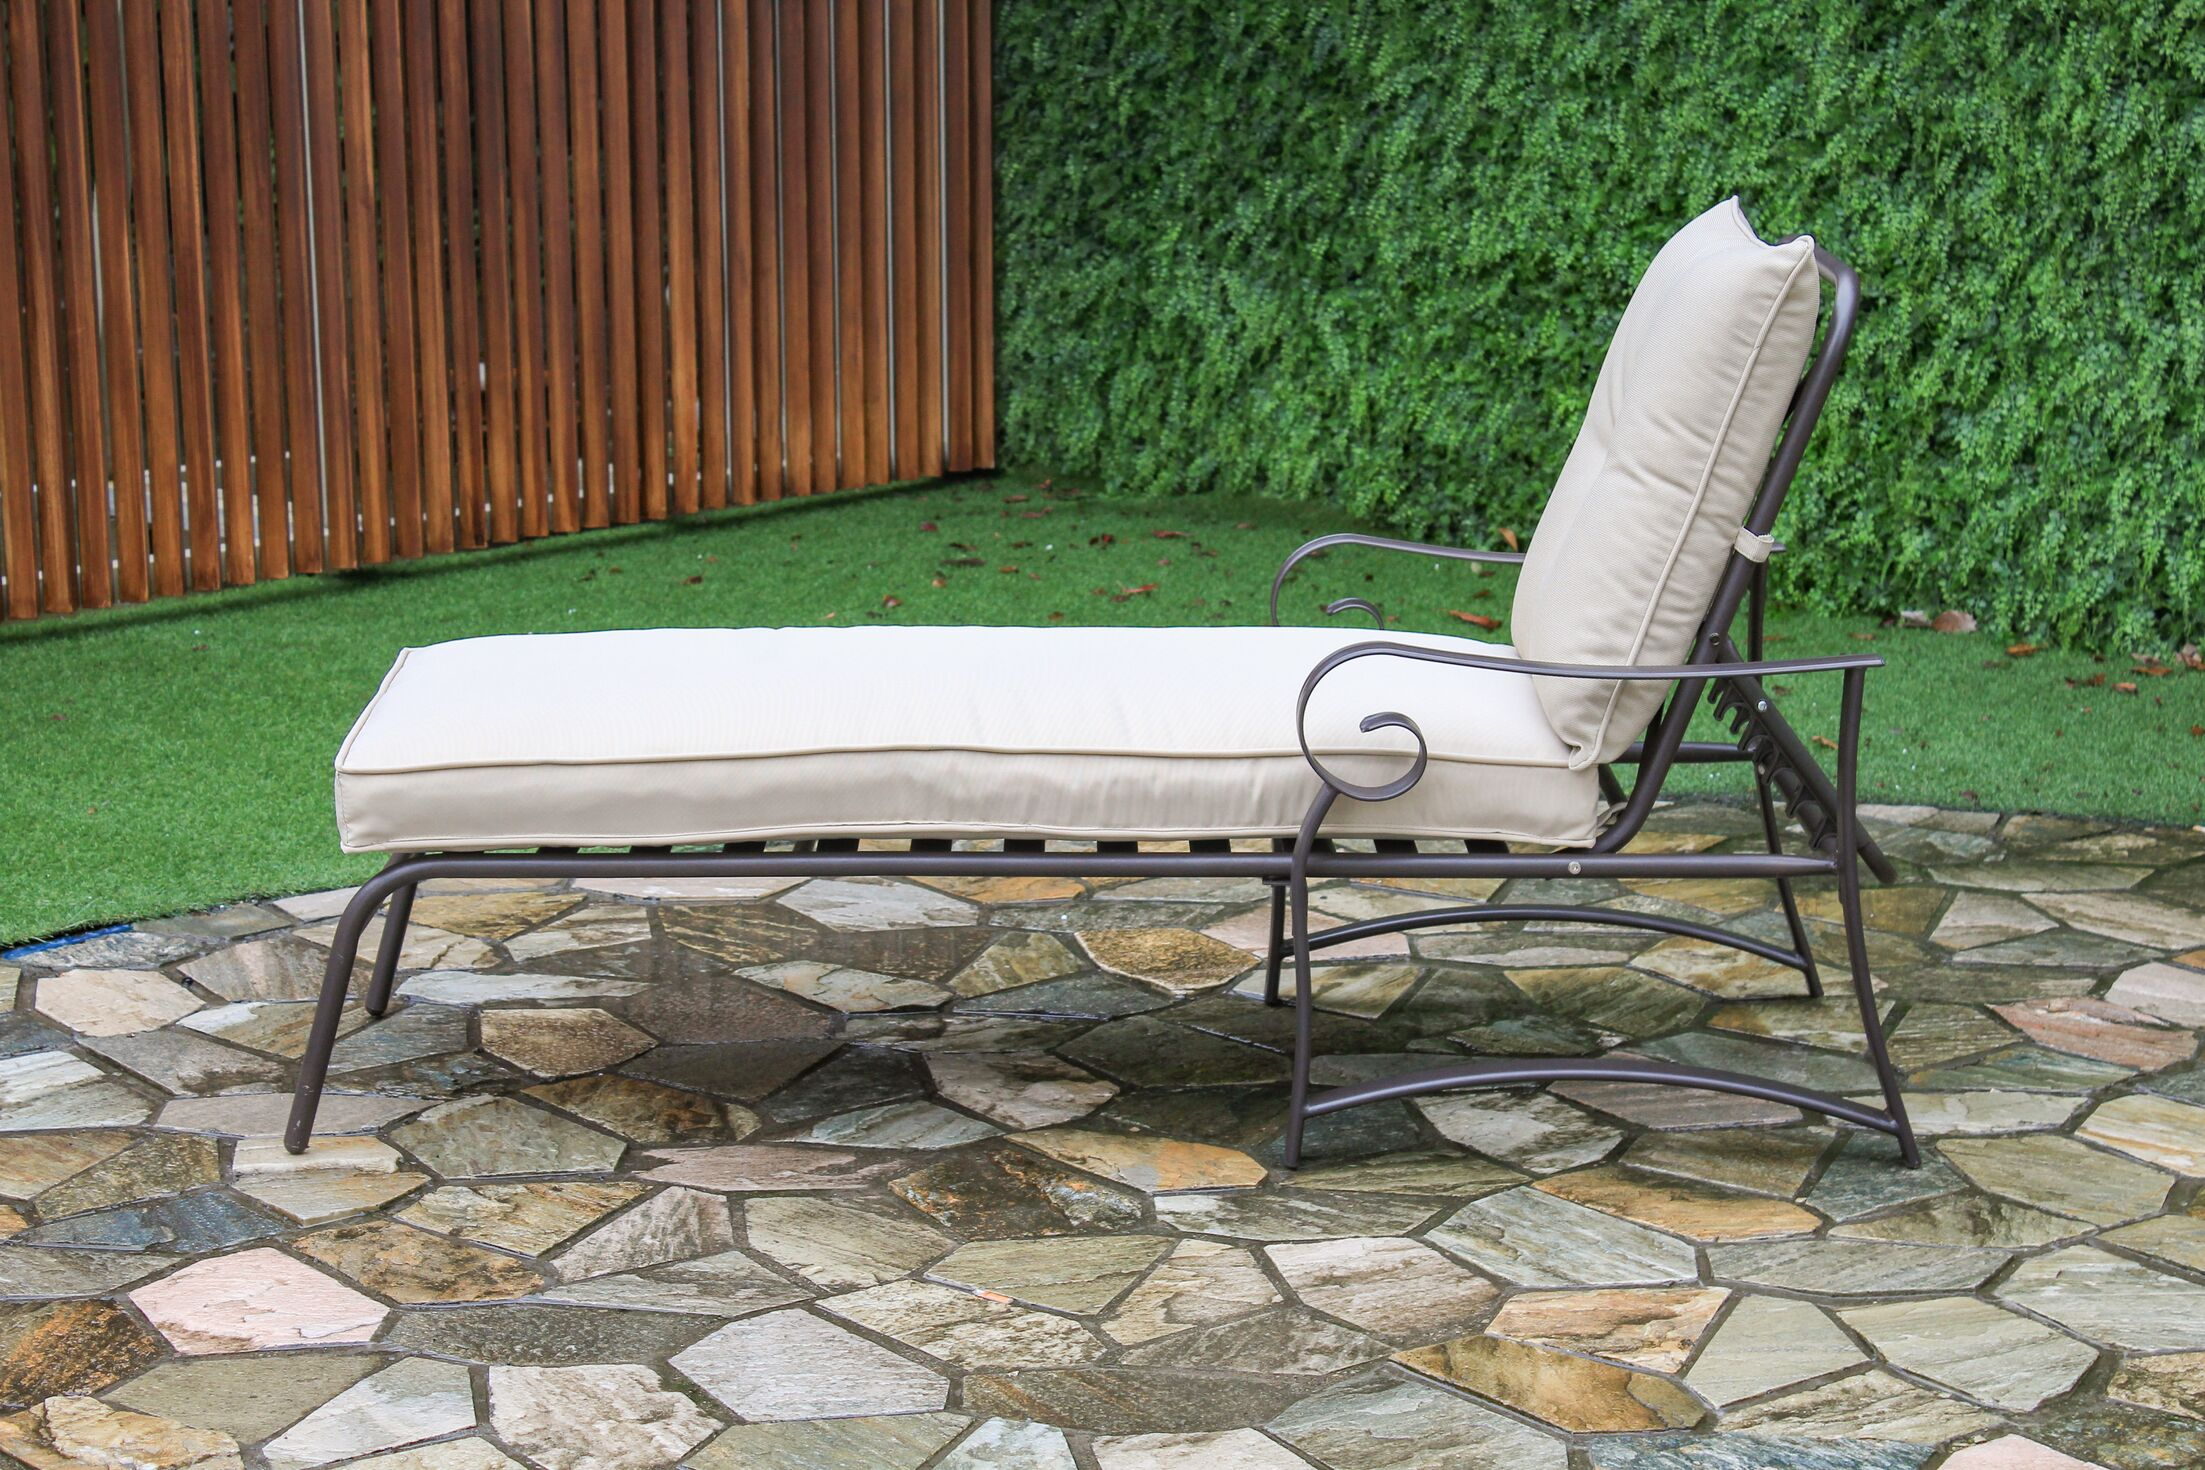 Tony Reclining Chaise Lounge with Cushion